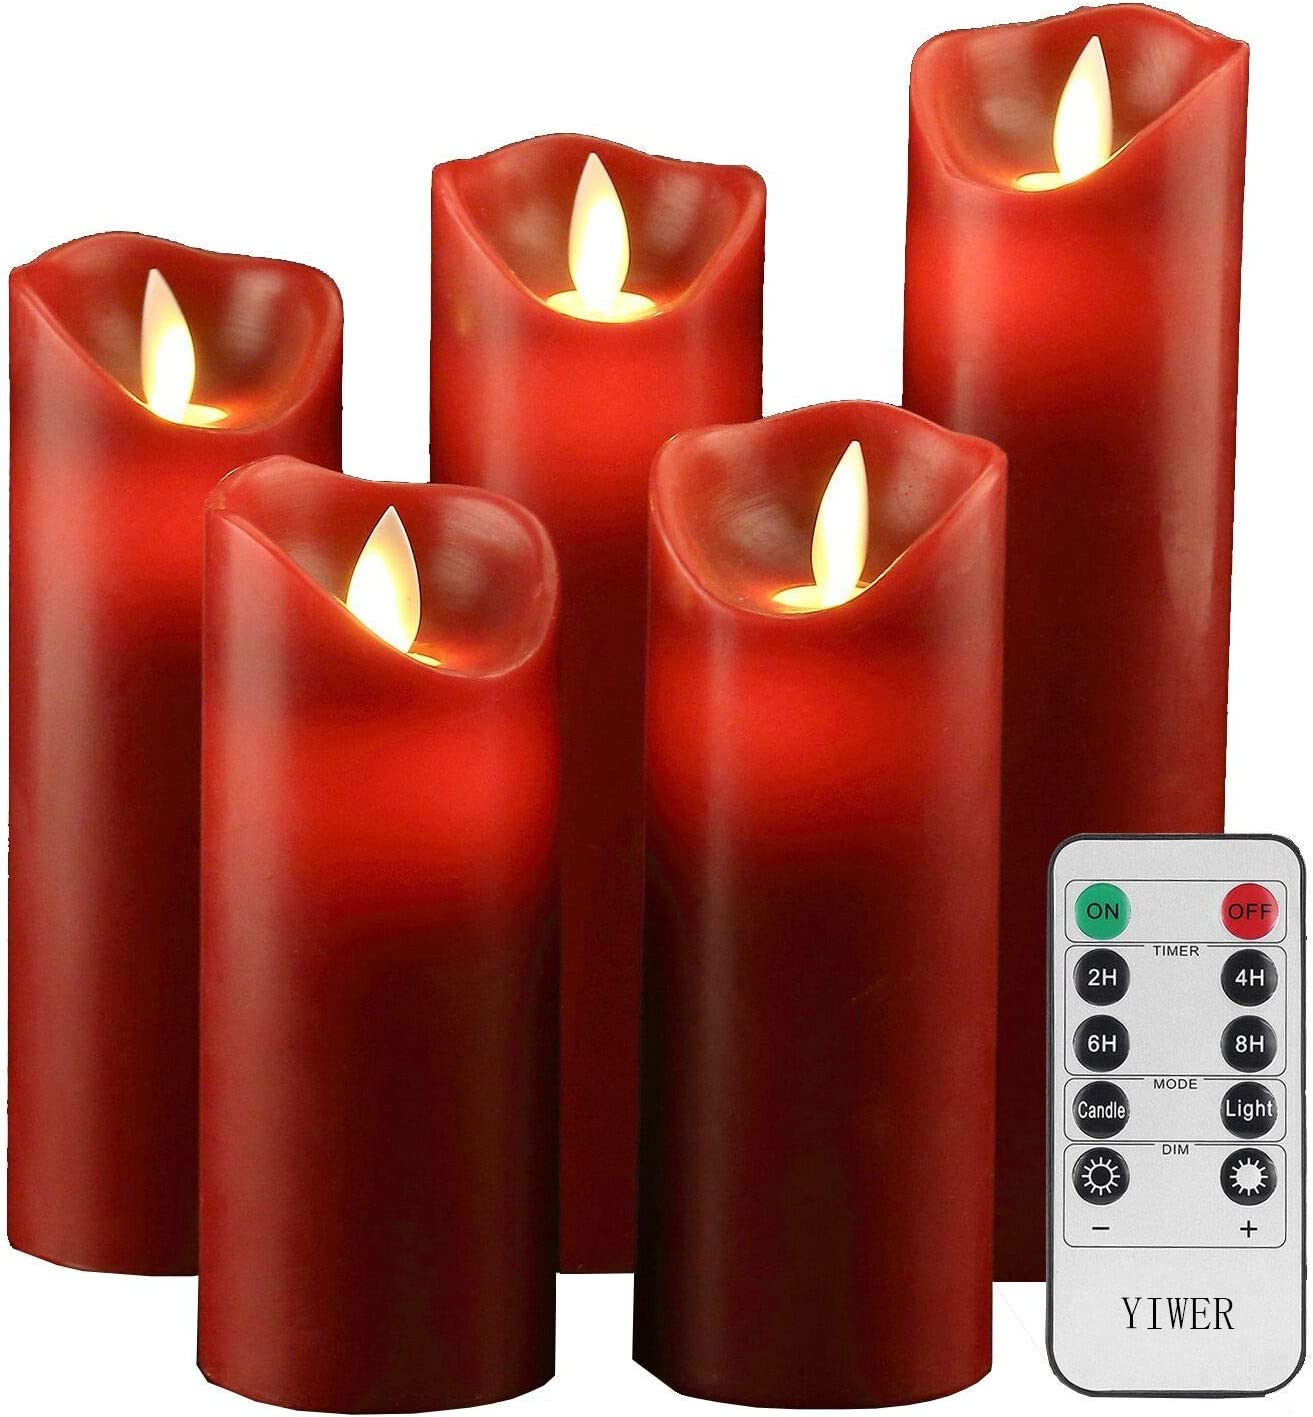 YIWER Flameless Candles 6 Set of Real Wax Not Plastic Pillars Include Realistic Dancing LED Flames and 10-Key Remote Control with 2//4//6//8-hours Tim